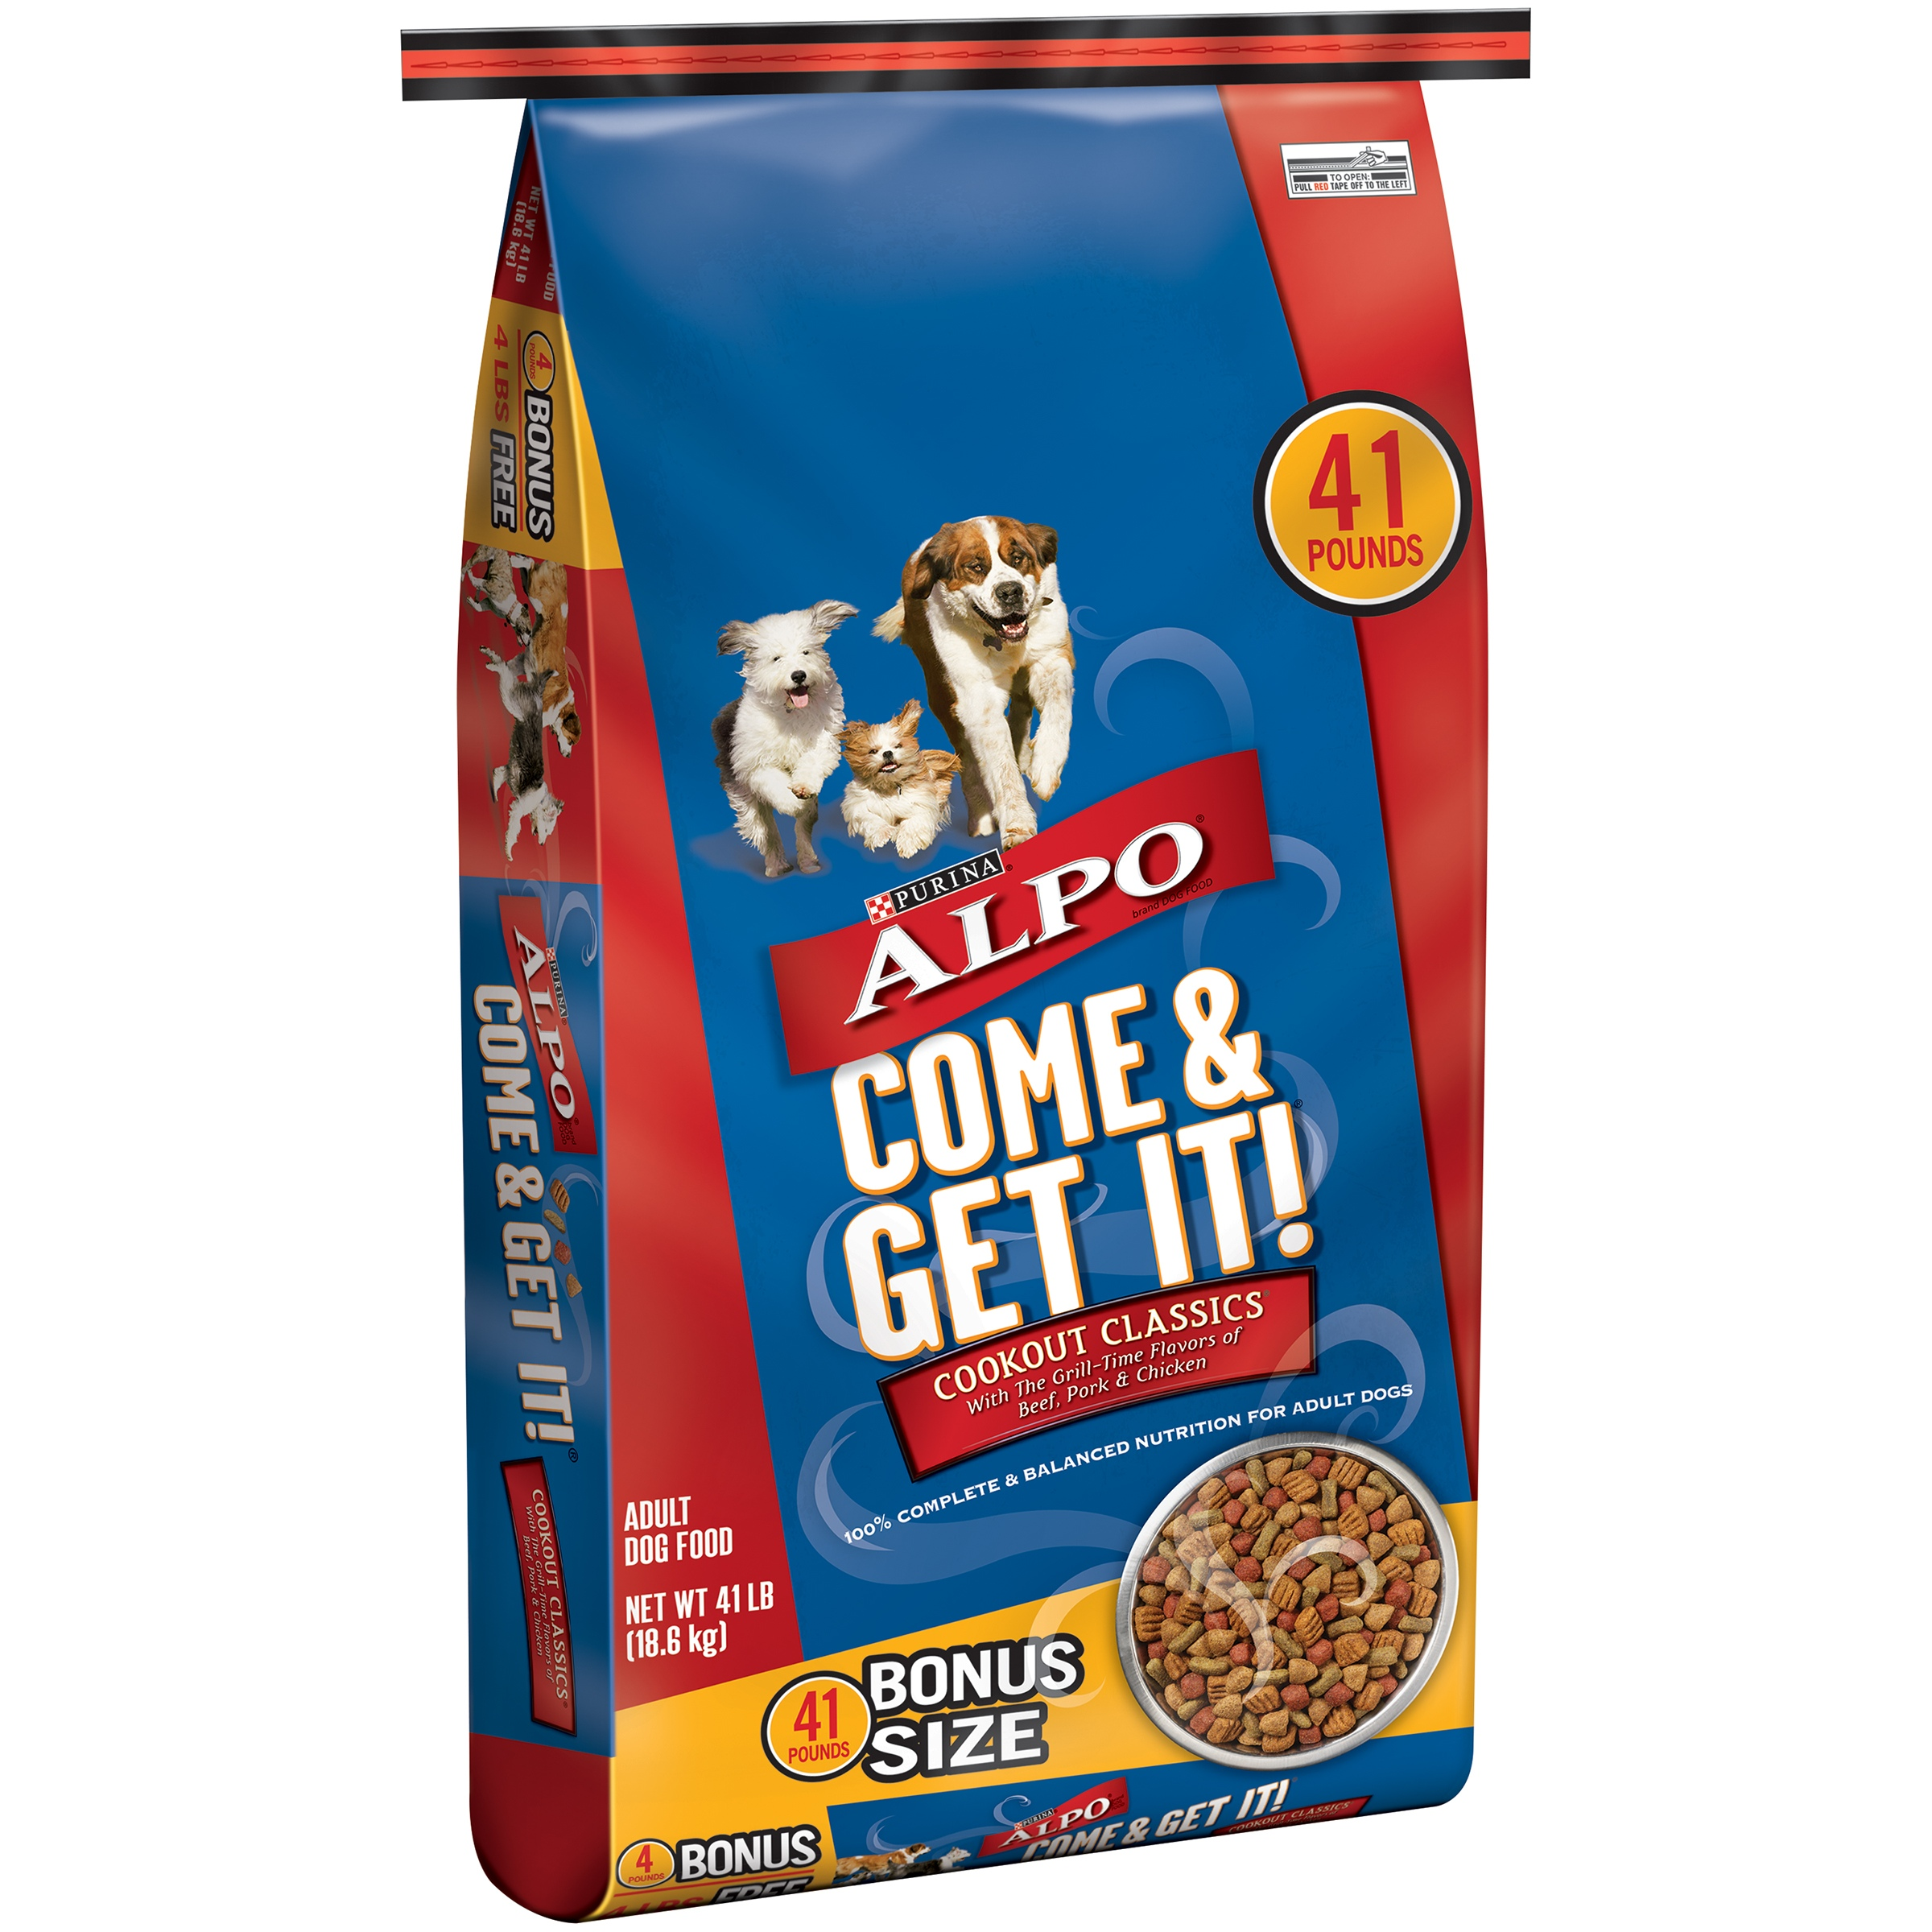 ALPO Come & Get It! Cookout Classics Dog Food 41 lb. Bag